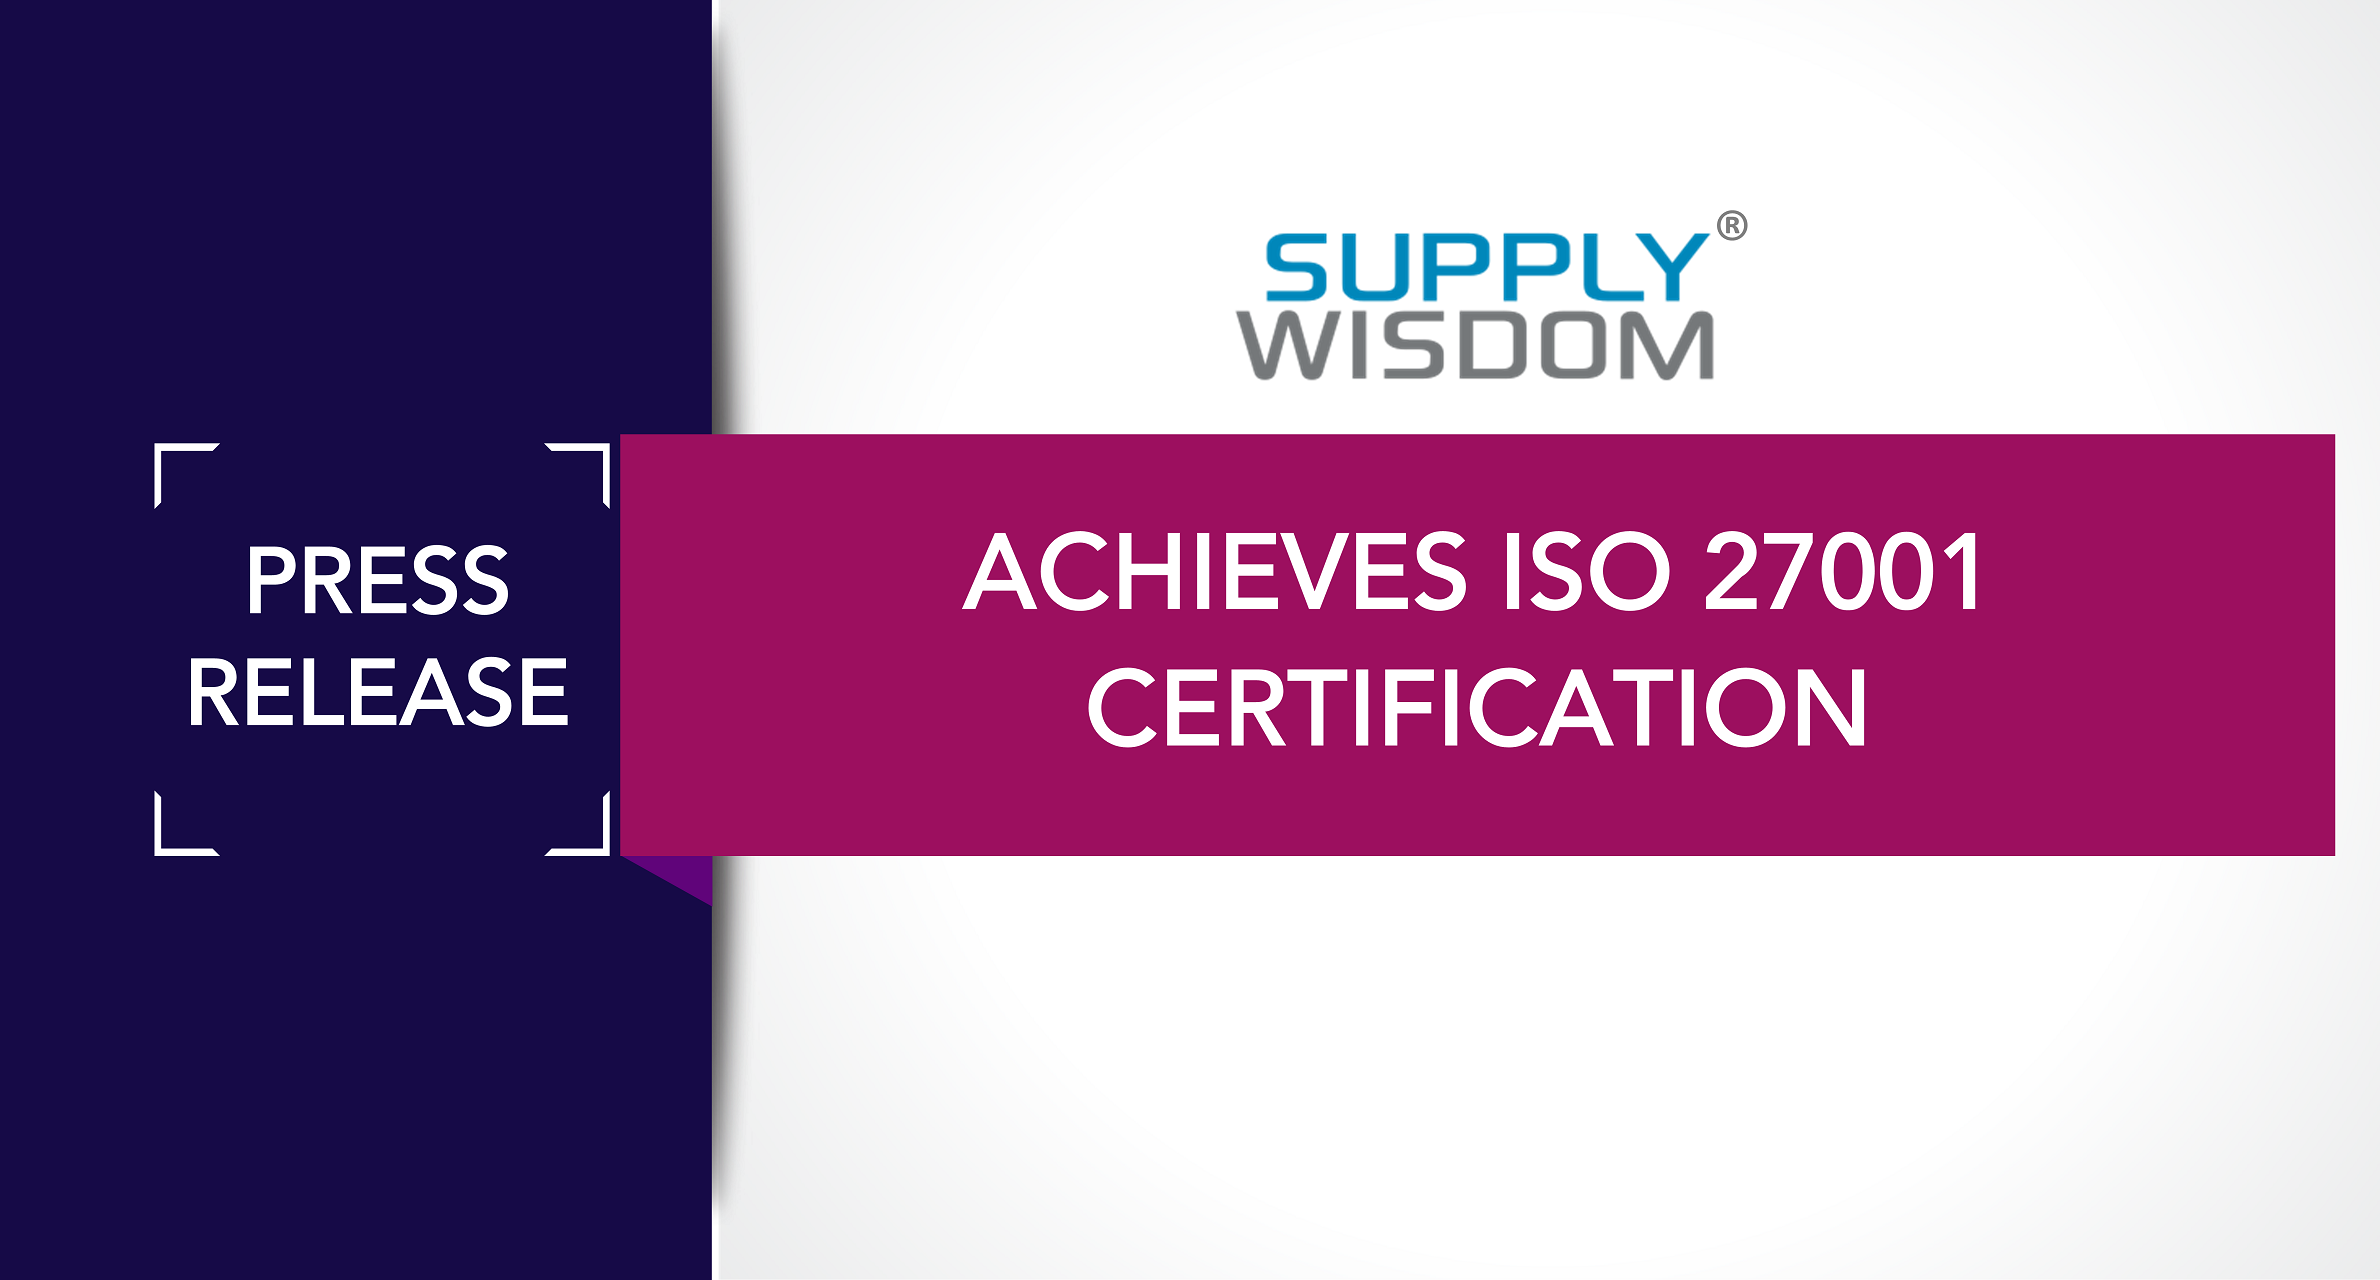 Supply Wisdom ISO 27001 Certified